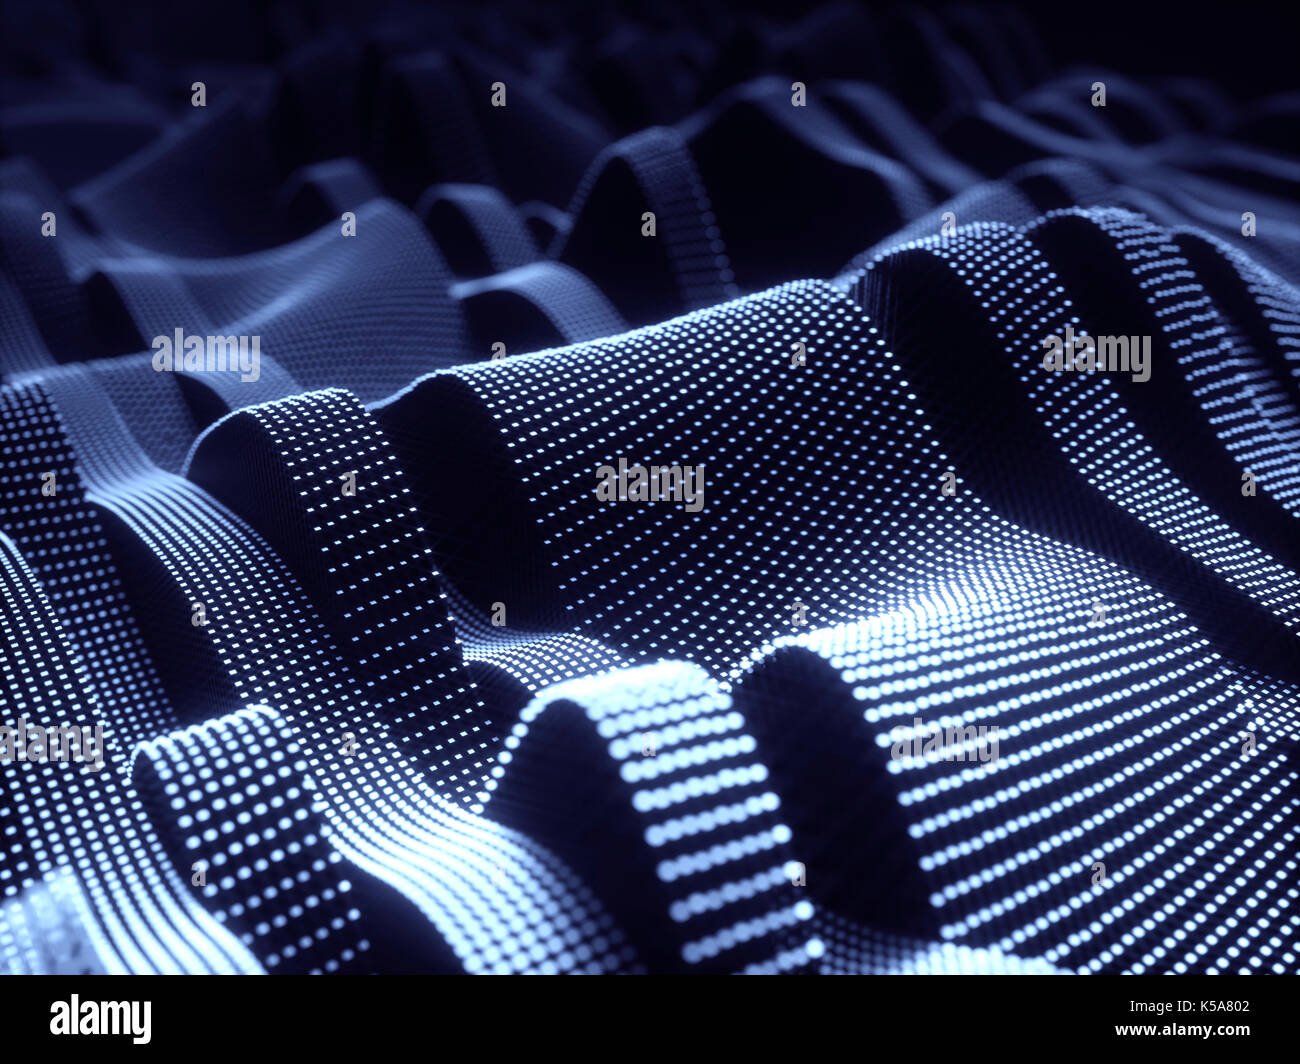 Metal structures, illustration. - Stock Image